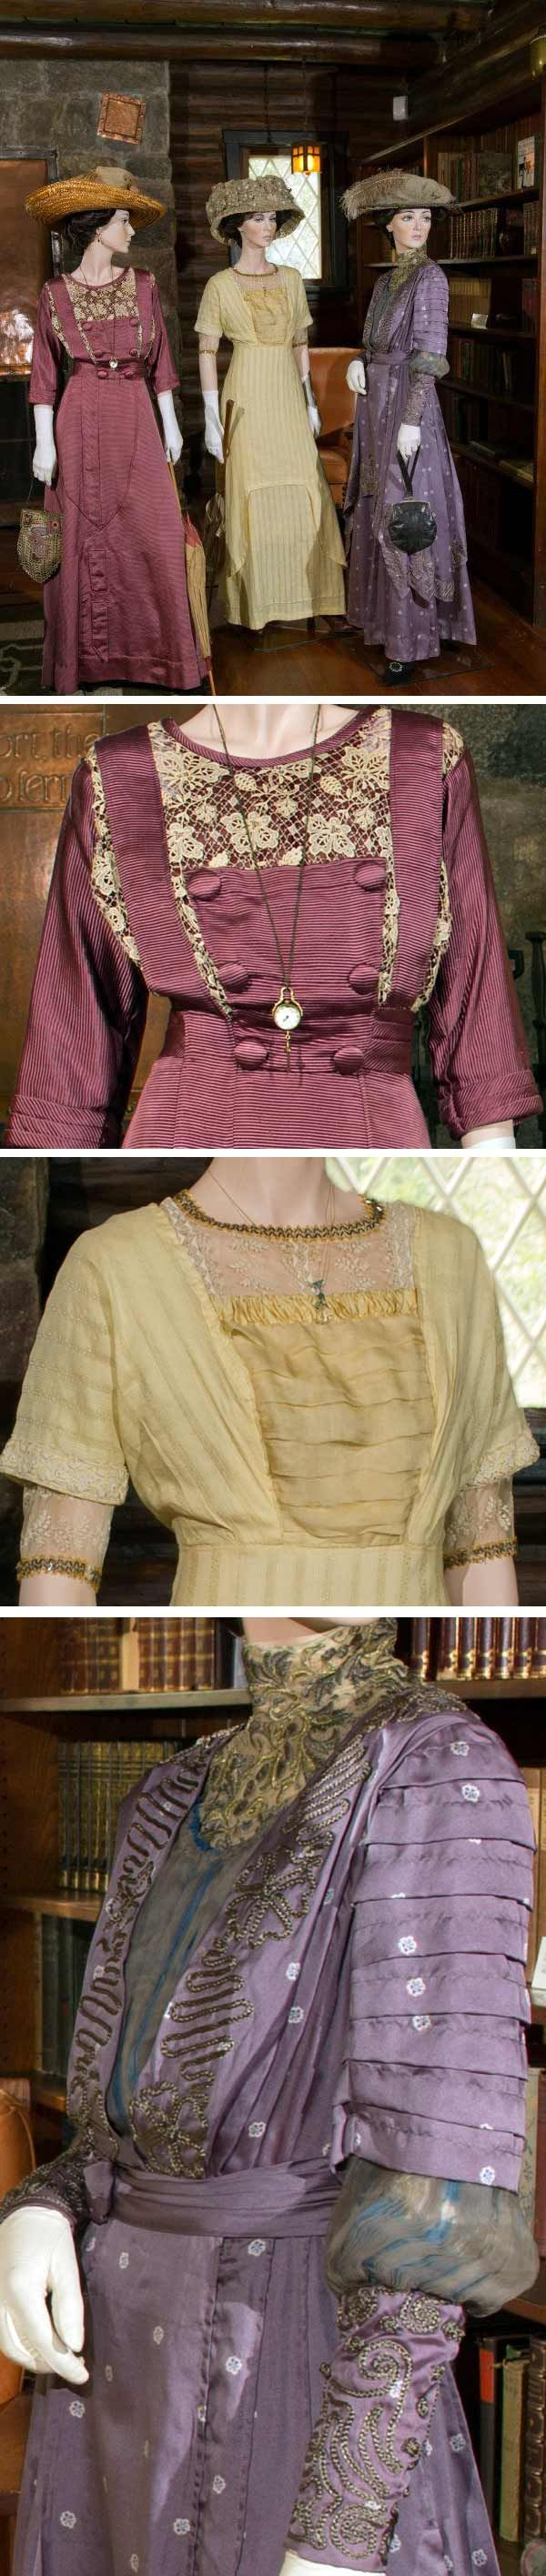 """From the Stickley Museum's fascinating blog, this scene is """"Visiting & Receiving."""" Left: plum ribbed silk faille with chemical lace detailing, ca. 1911. Center: pale yellow ribbed silk with china silk front, ca. 1911. Right: dark lilac printed silk decorated with chain stitch embroidery, ca. 1911. See http://www.stickleymuseum.org/blog/ for lots of other interesting info."""